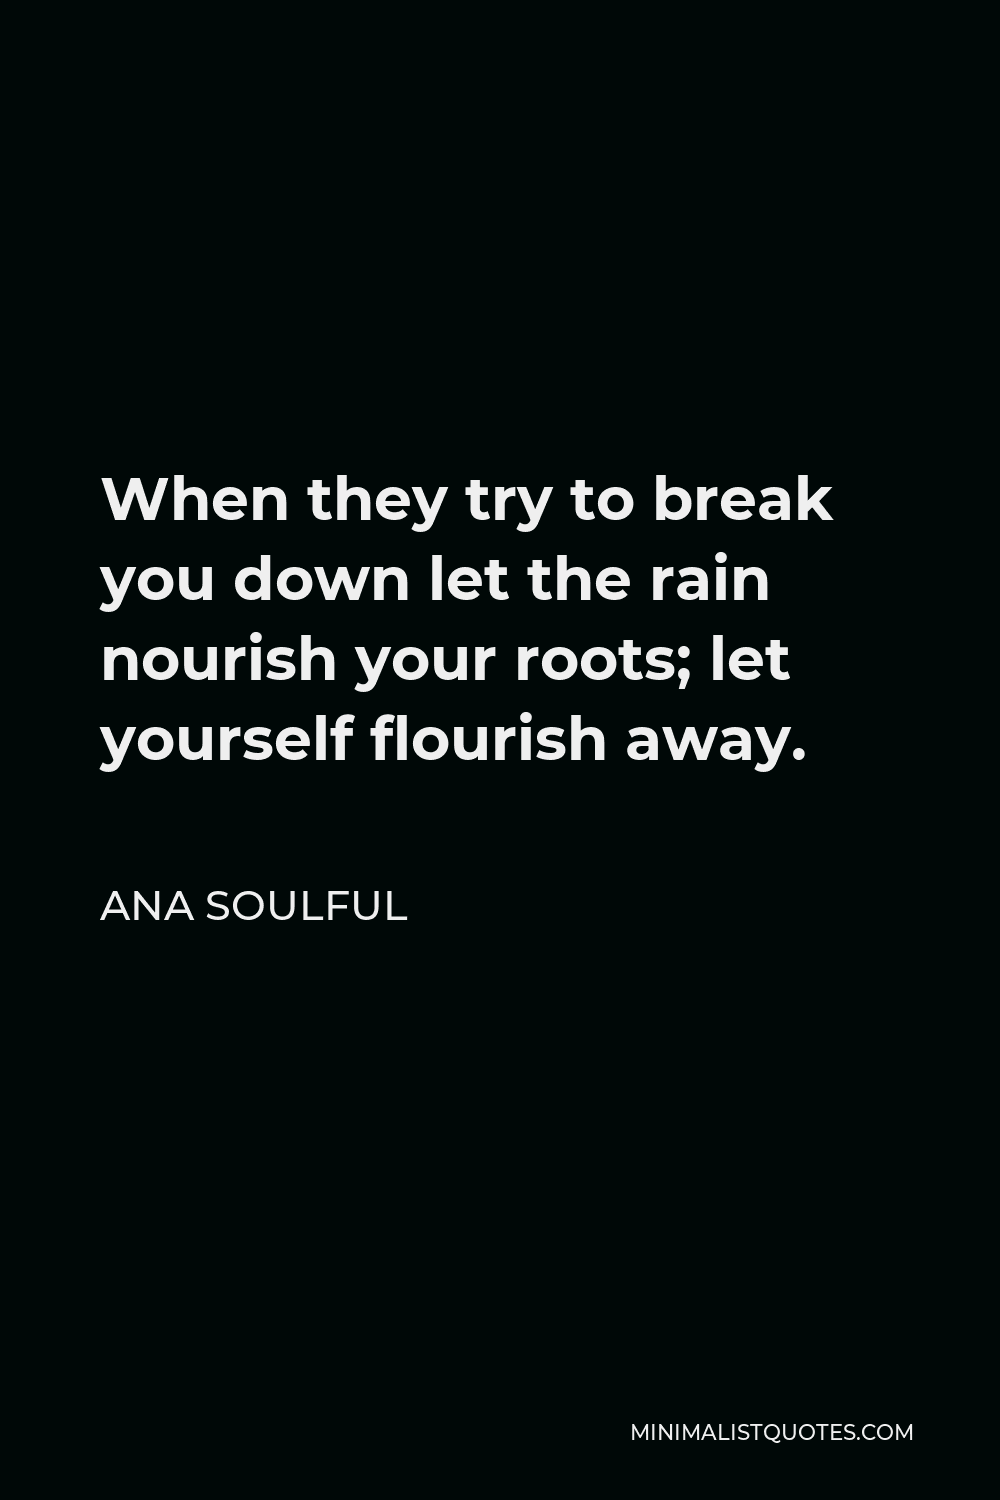 Ana Soulful Quote - When they try to break you down let the rain nourish your roots; let yourself flourish away.